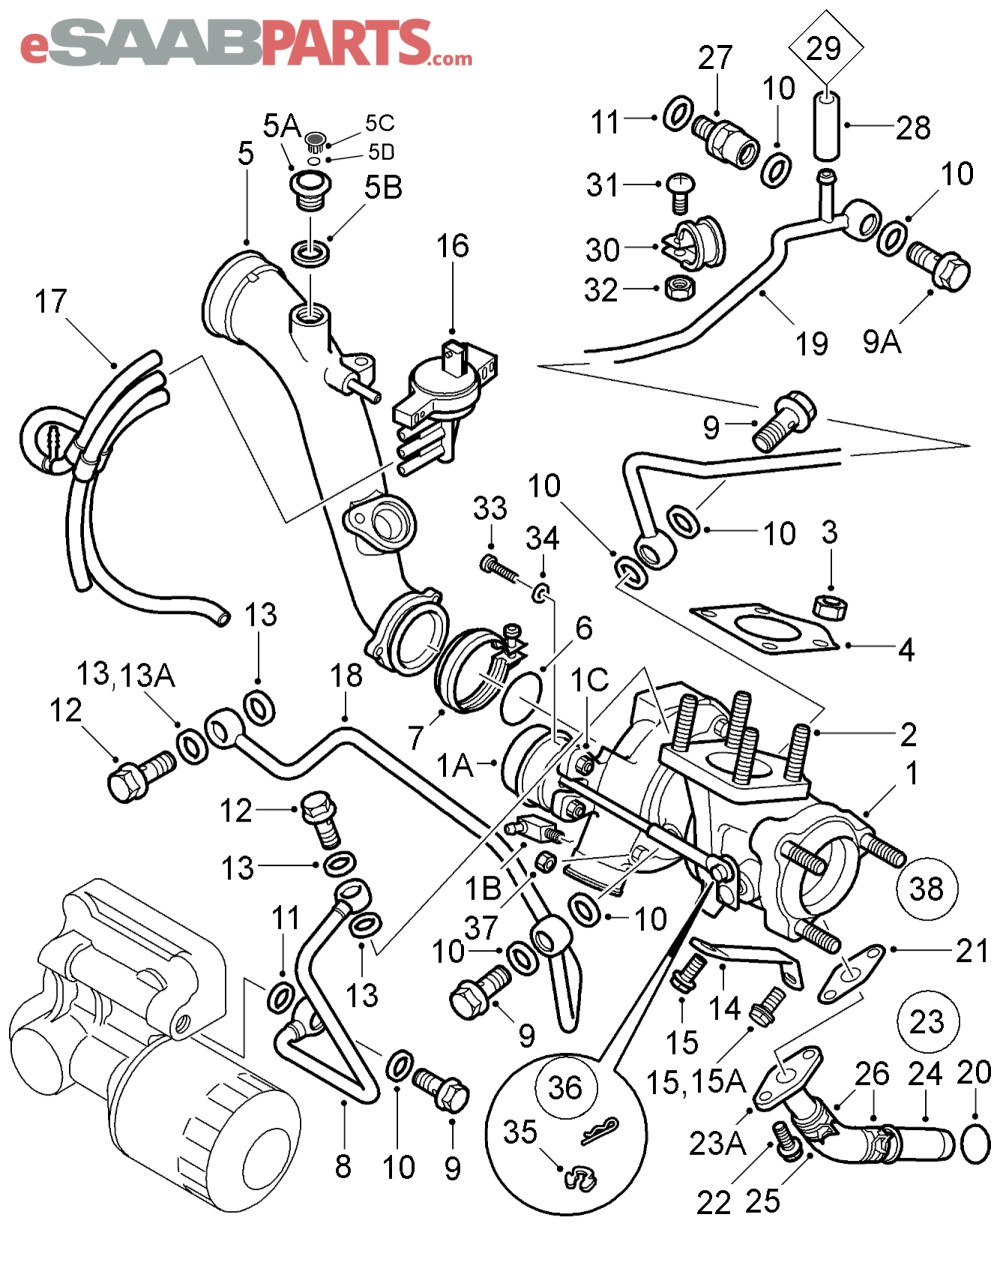 medium resolution of 2003 saab 9 5 engine diagram wiring diagram img with 1999 saab 9 5 2 3 engine diagram furthermore saab 900 engine